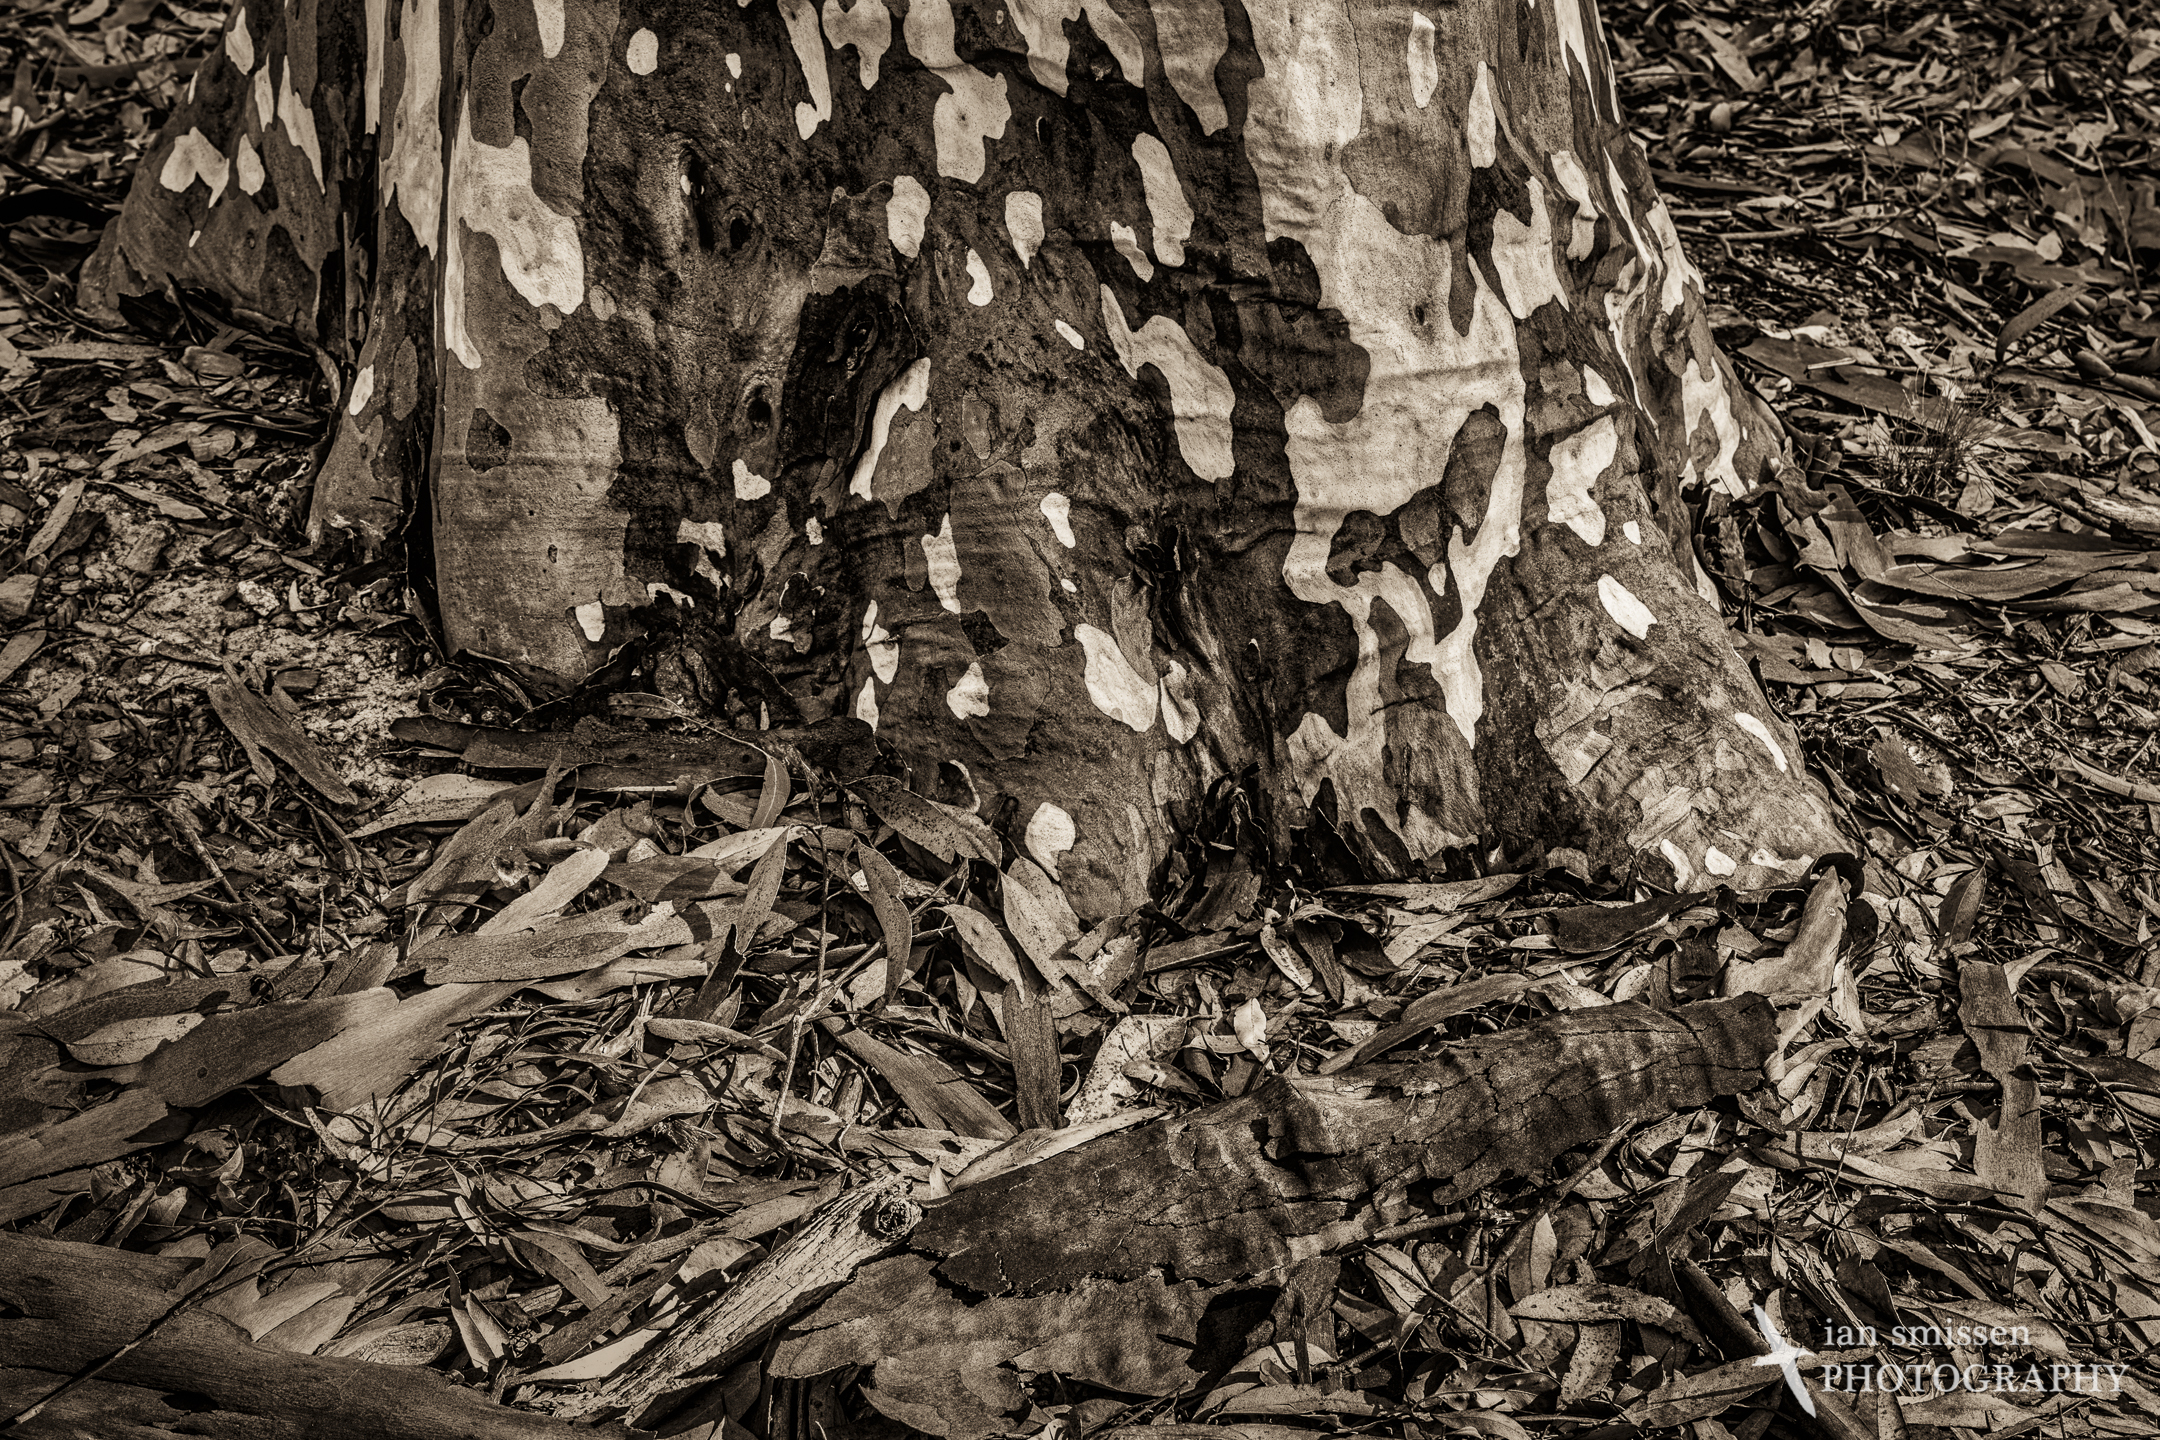 Spotted Gum and leaf litter 60mm, ISO 100, 1/40 second @ f/11